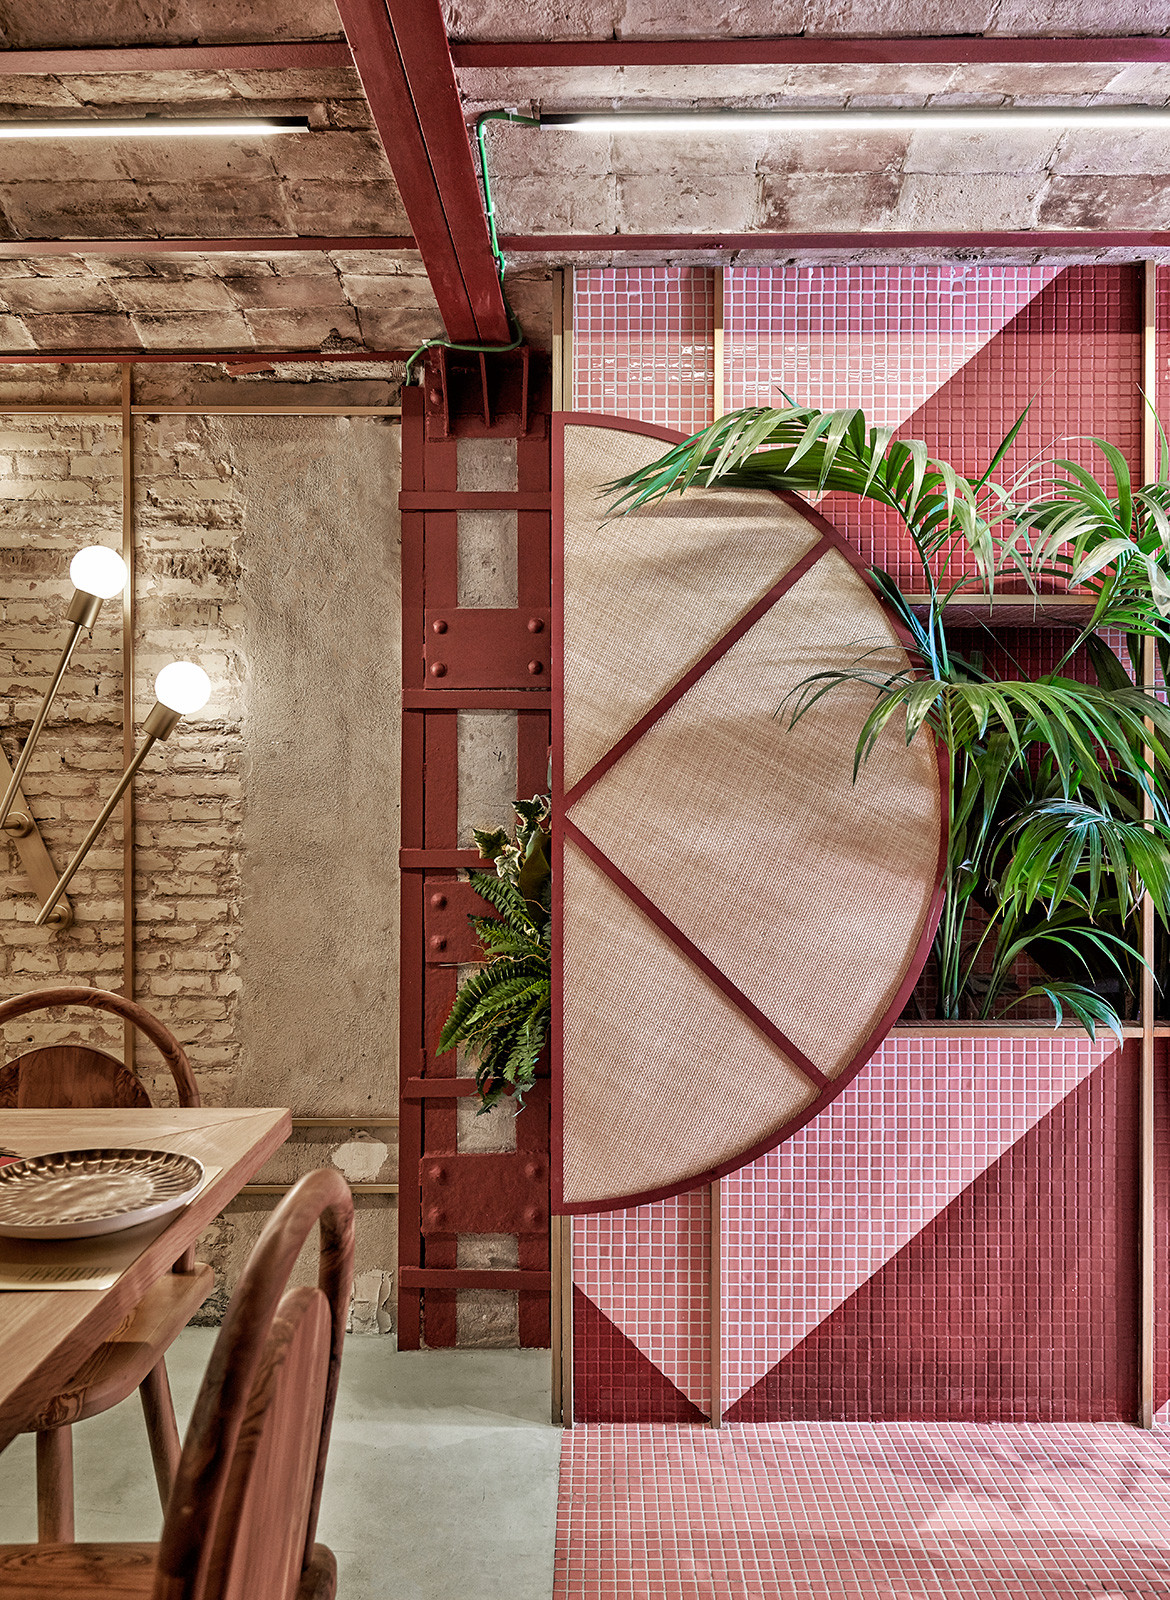 Kaikaya Restaurant Valencia Brazil Masquespacio Indesign Workplace